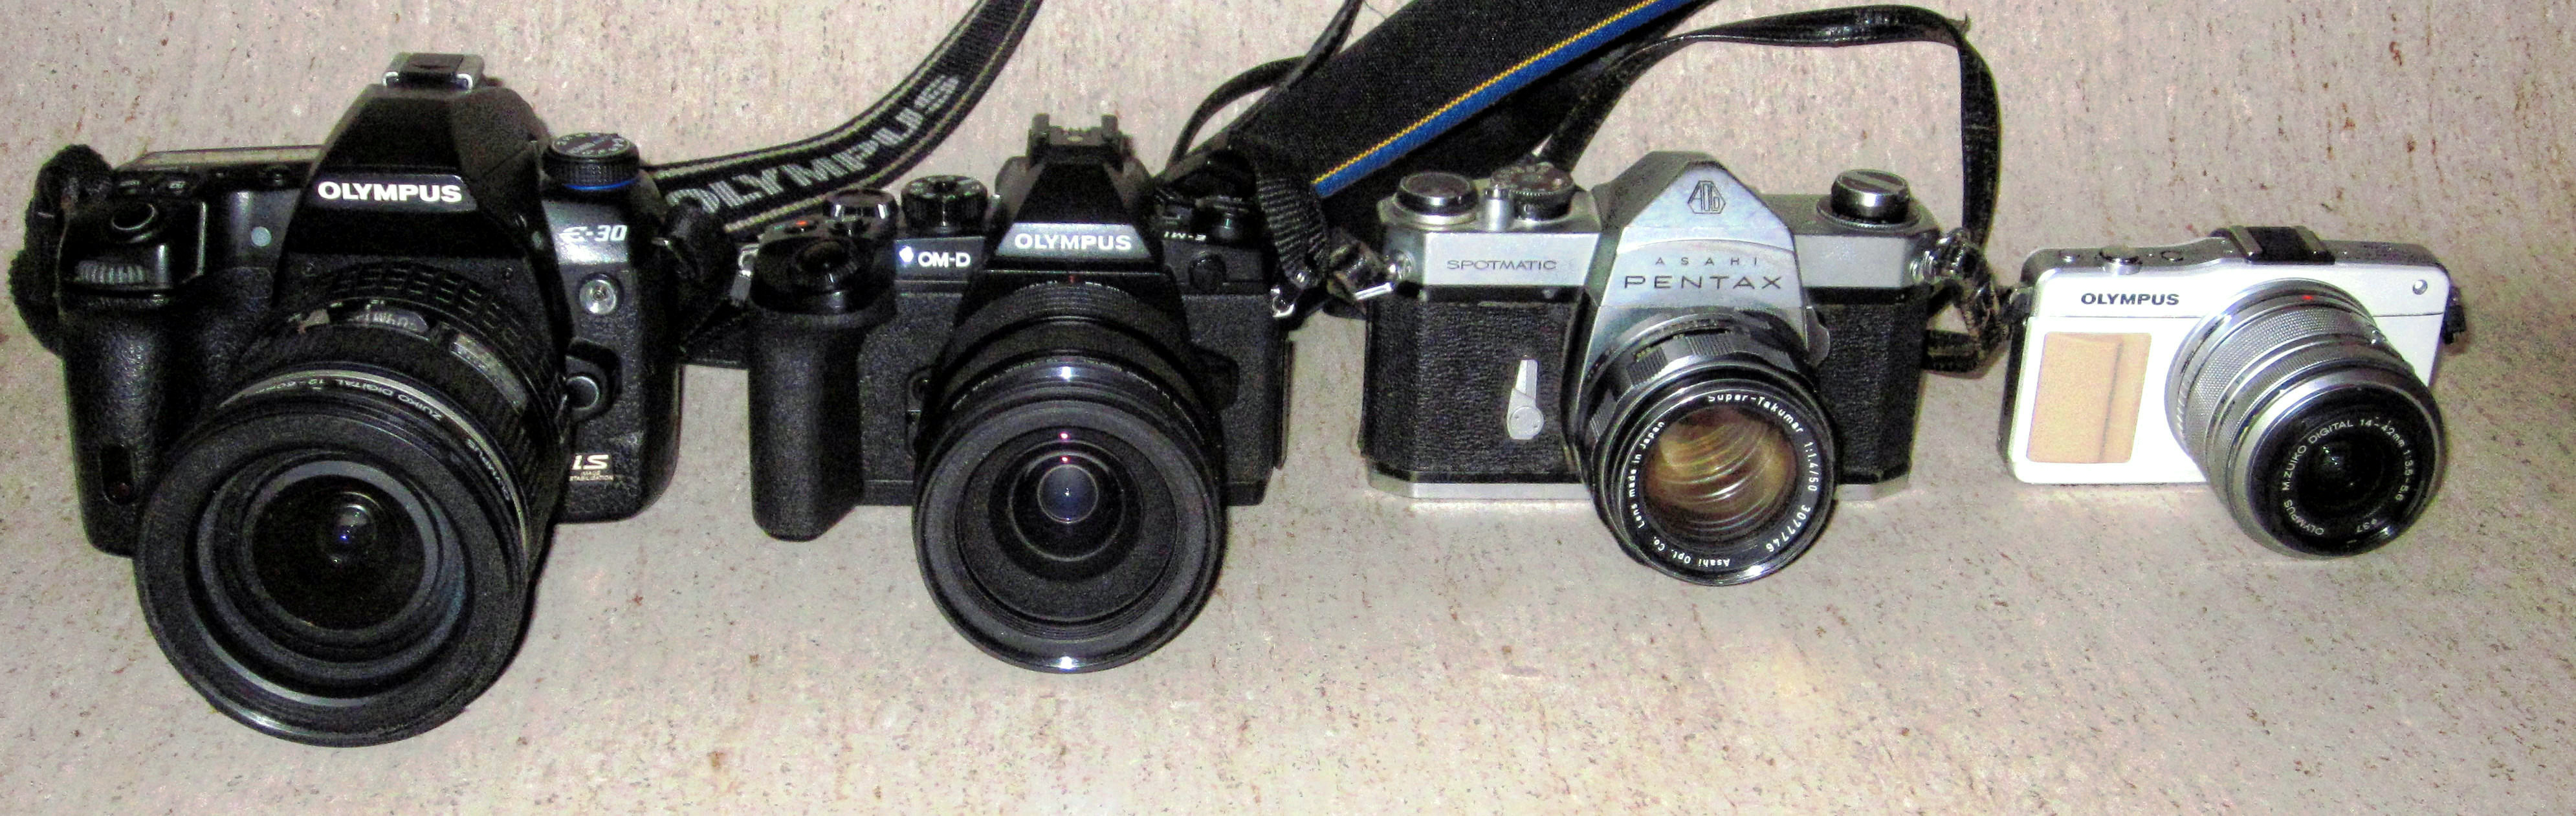 Olys-and-Pentax-2.jpeg